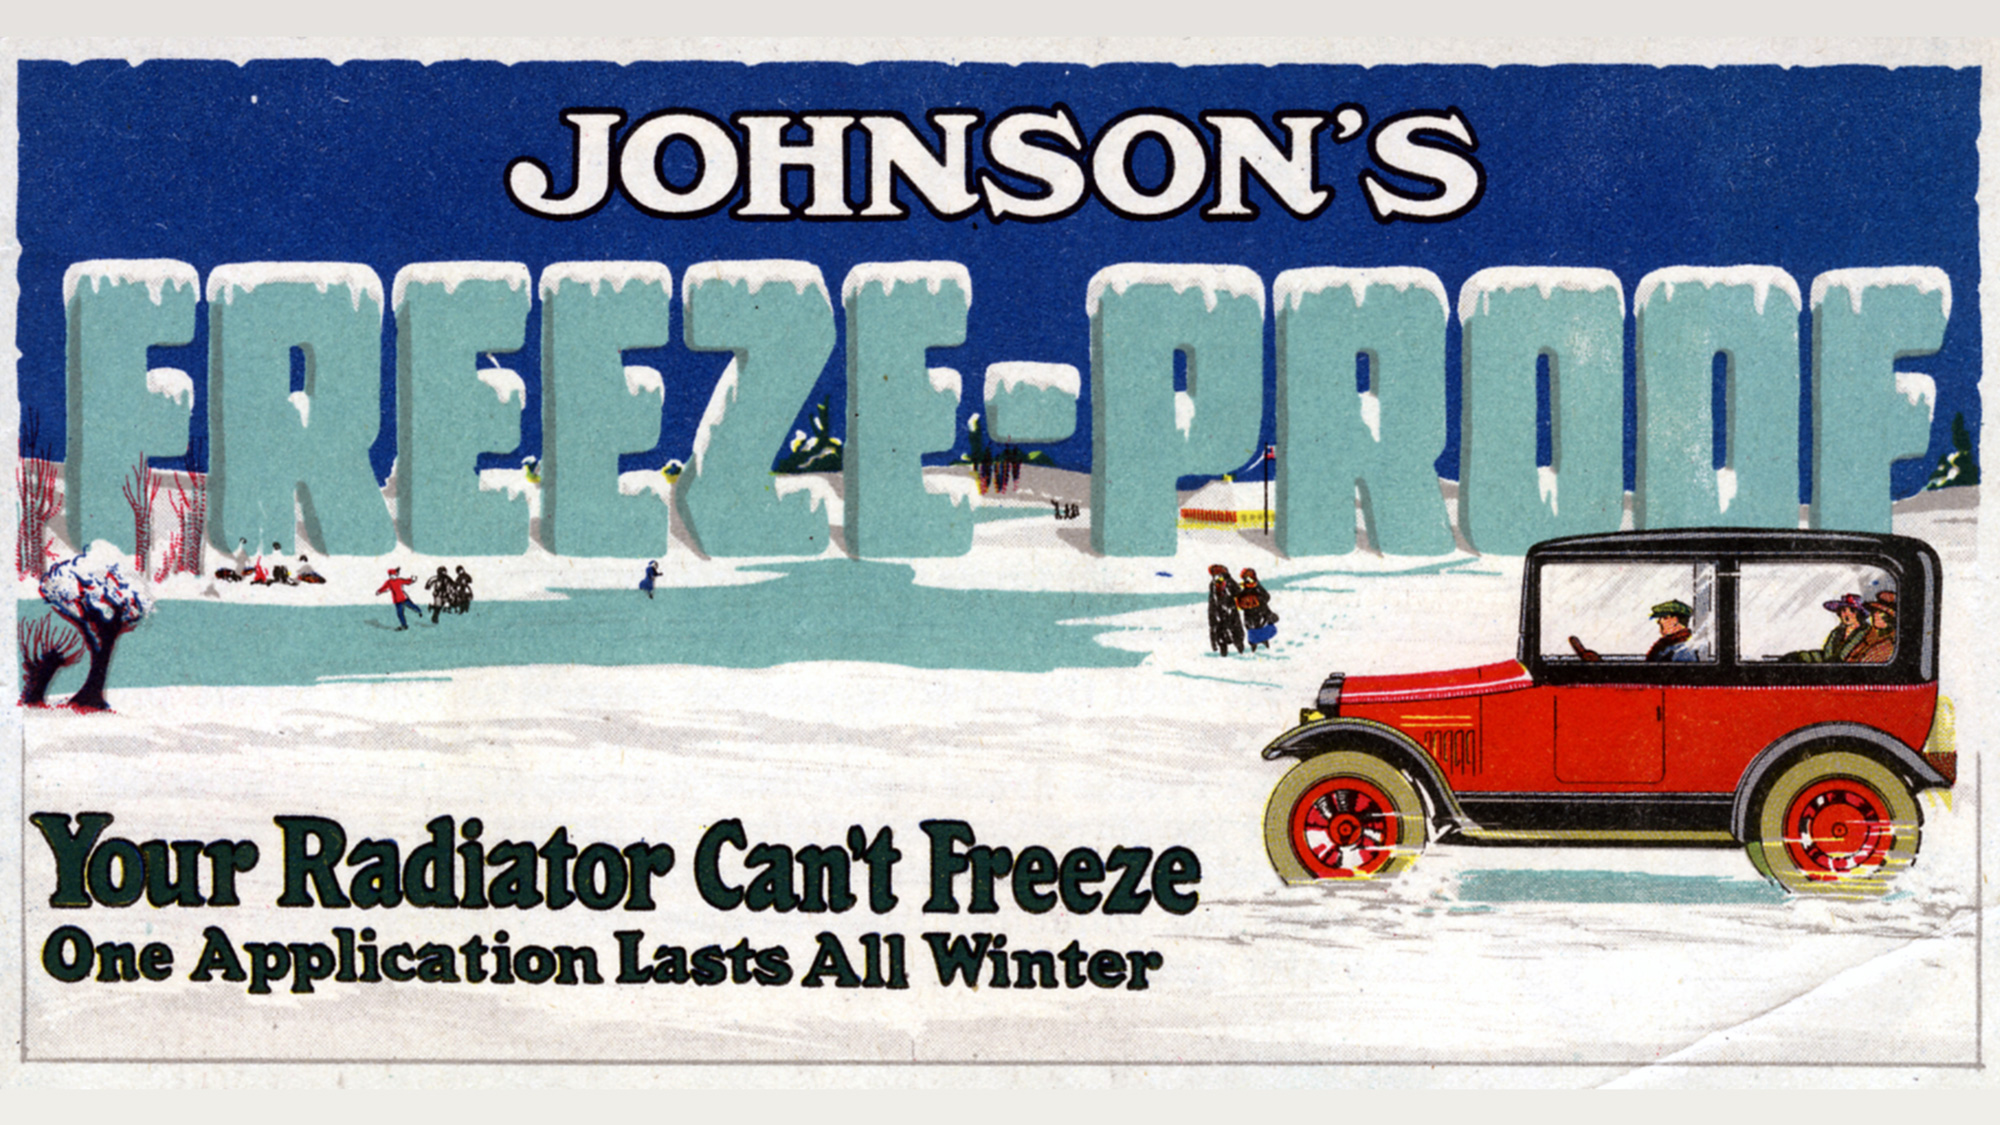 Vintage-advertentie uit 1918 voor Johnson's Freeze Proof